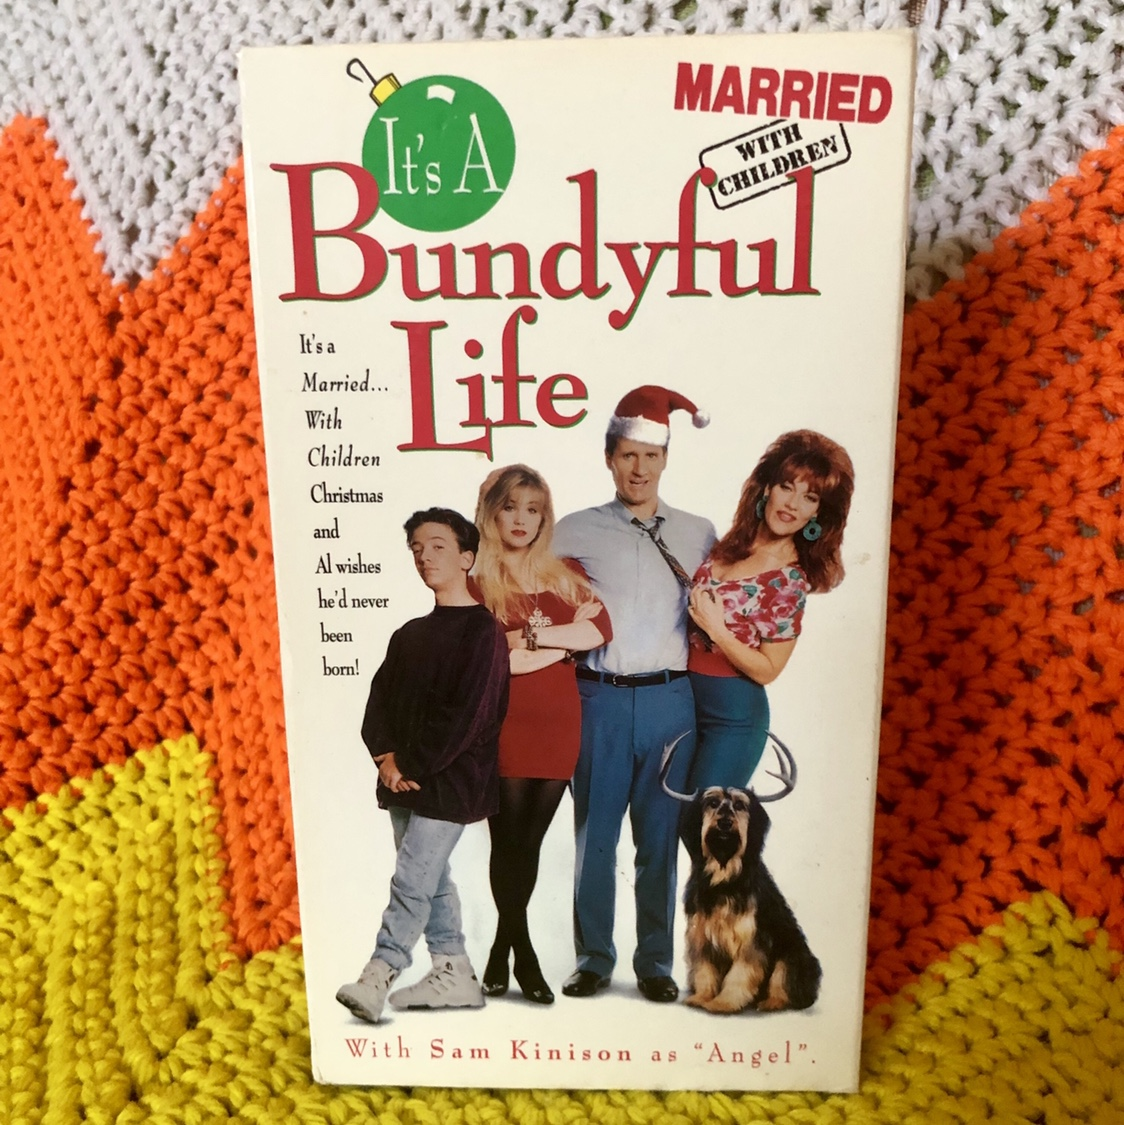 Married With Children Christmas.Married With Children Christmas Show Vhs It S A Depop